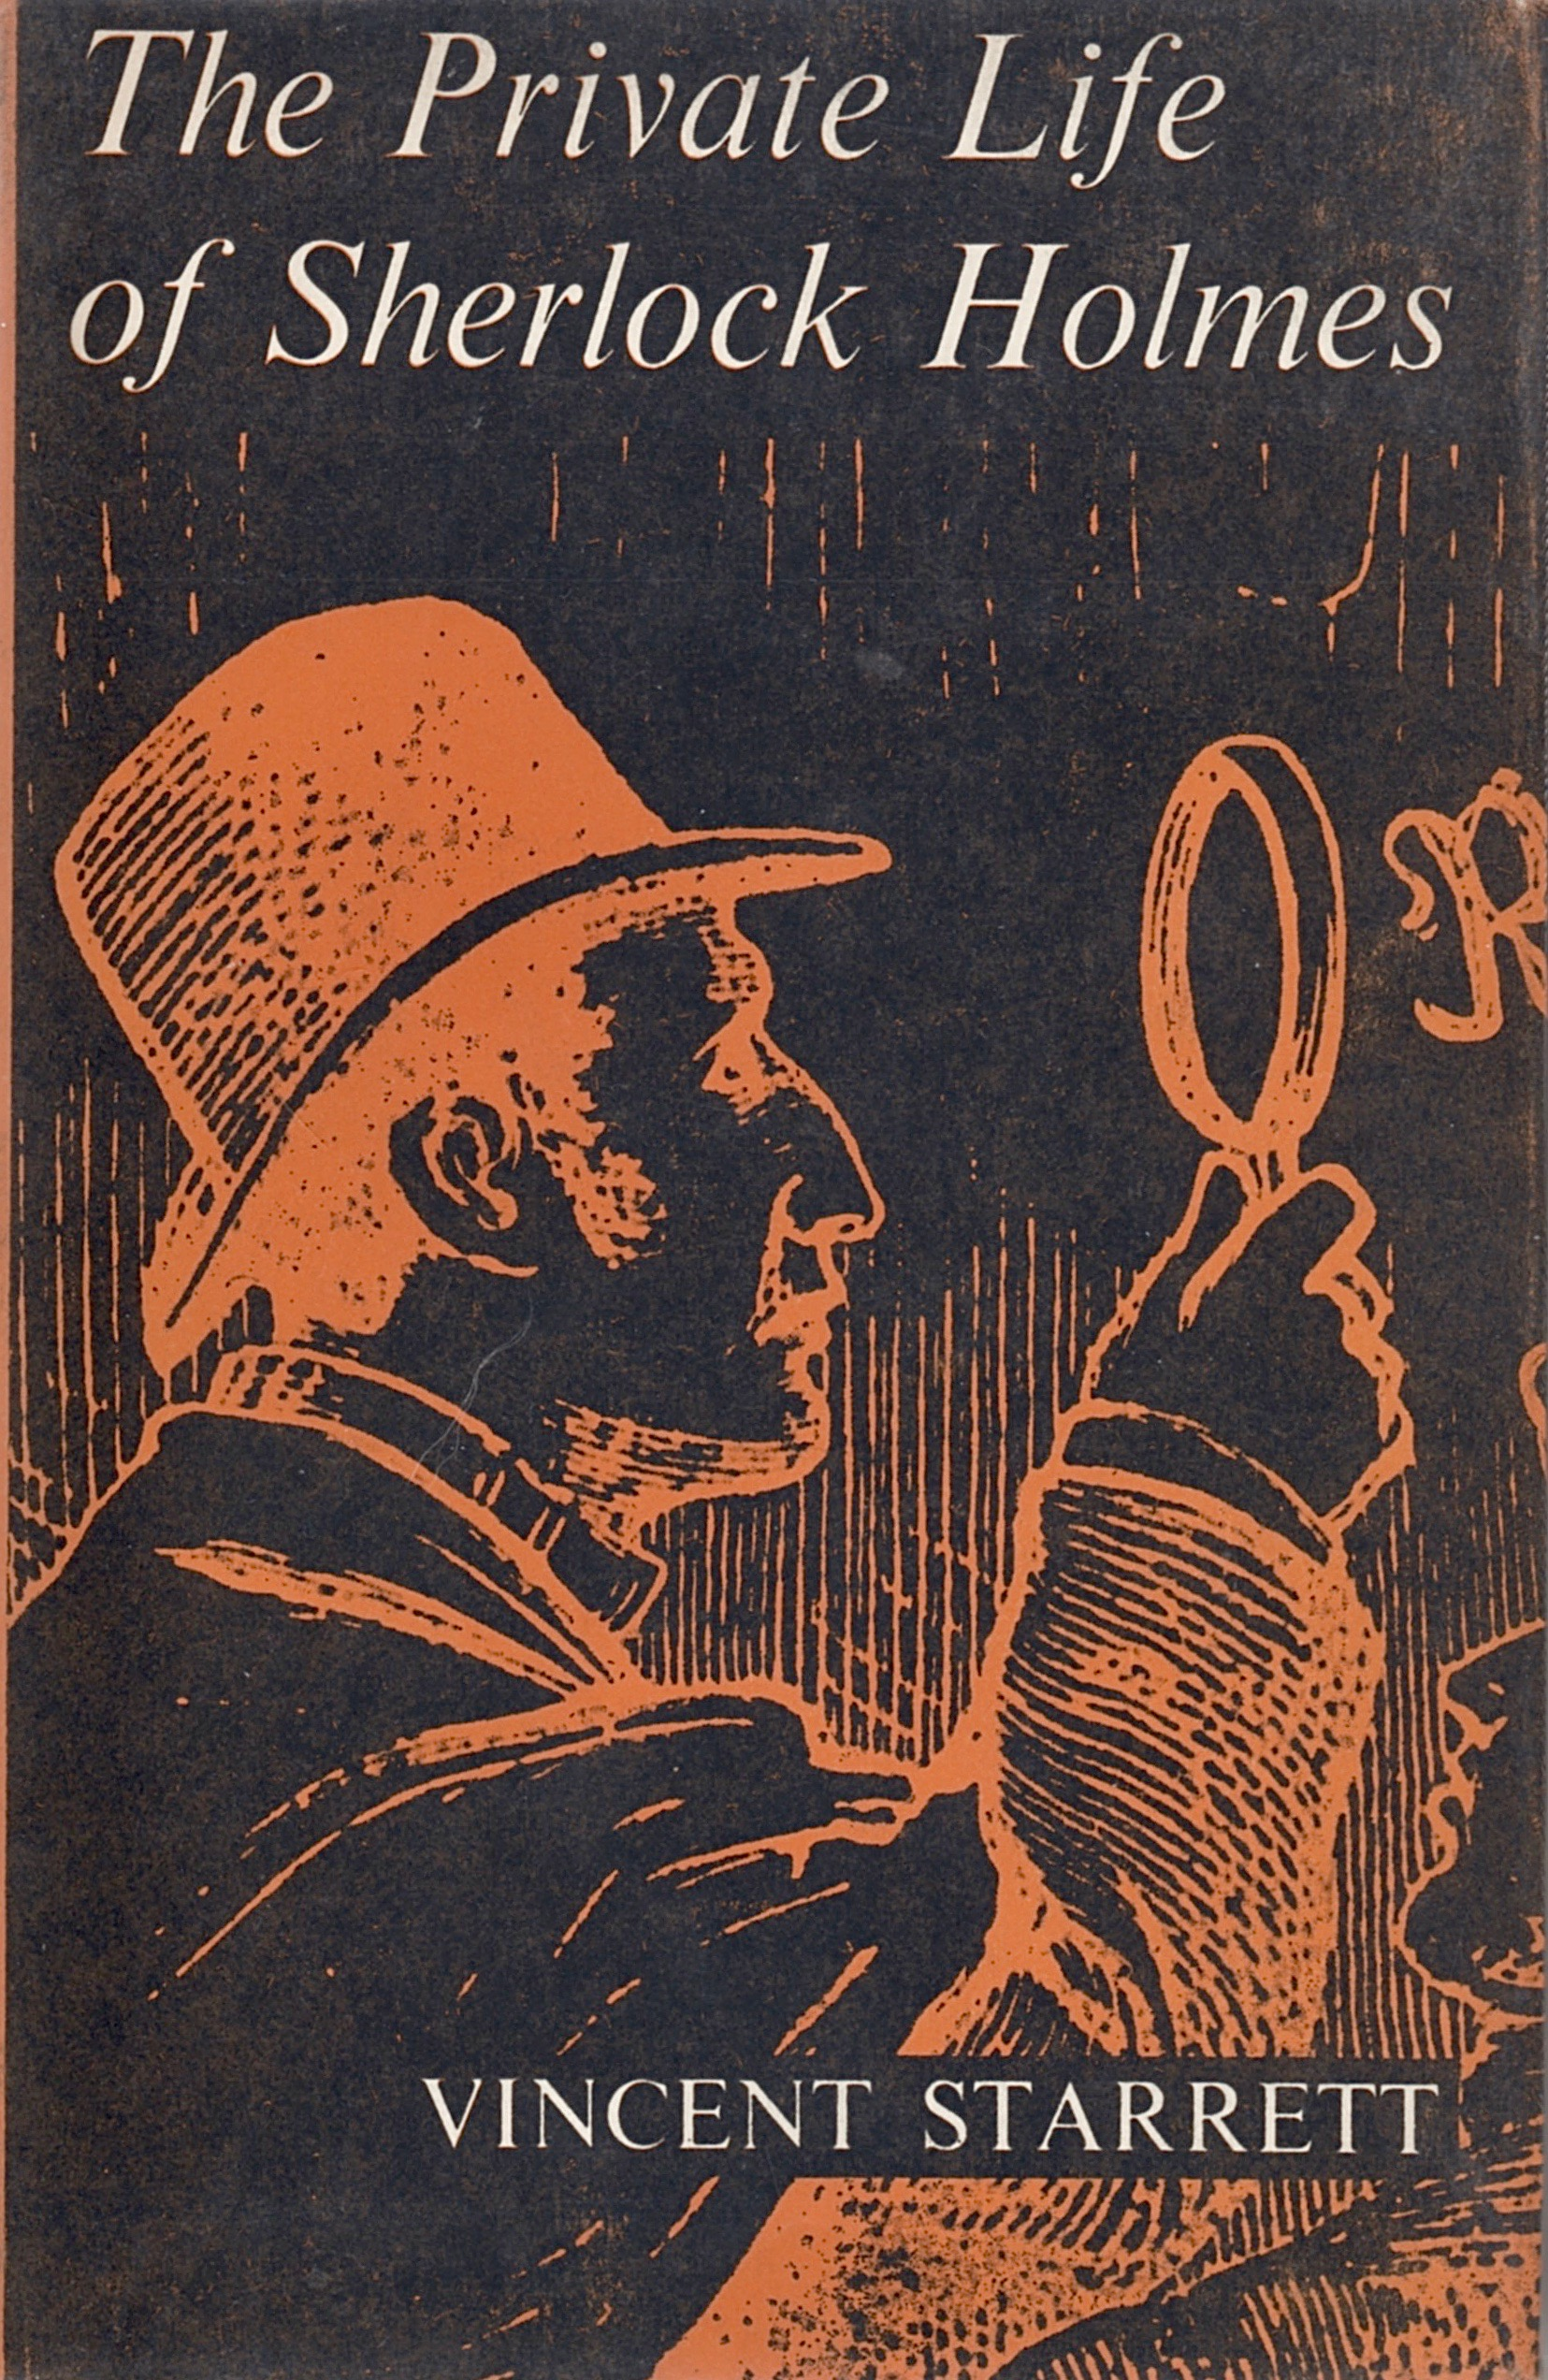 The dust jacket for  The Private Life of Sherlock Holmes  1961 British edition. The horror of the X-ray effect is ameliorated just a bit by the use of orange. Lots and lots of Kool-Aid orange.